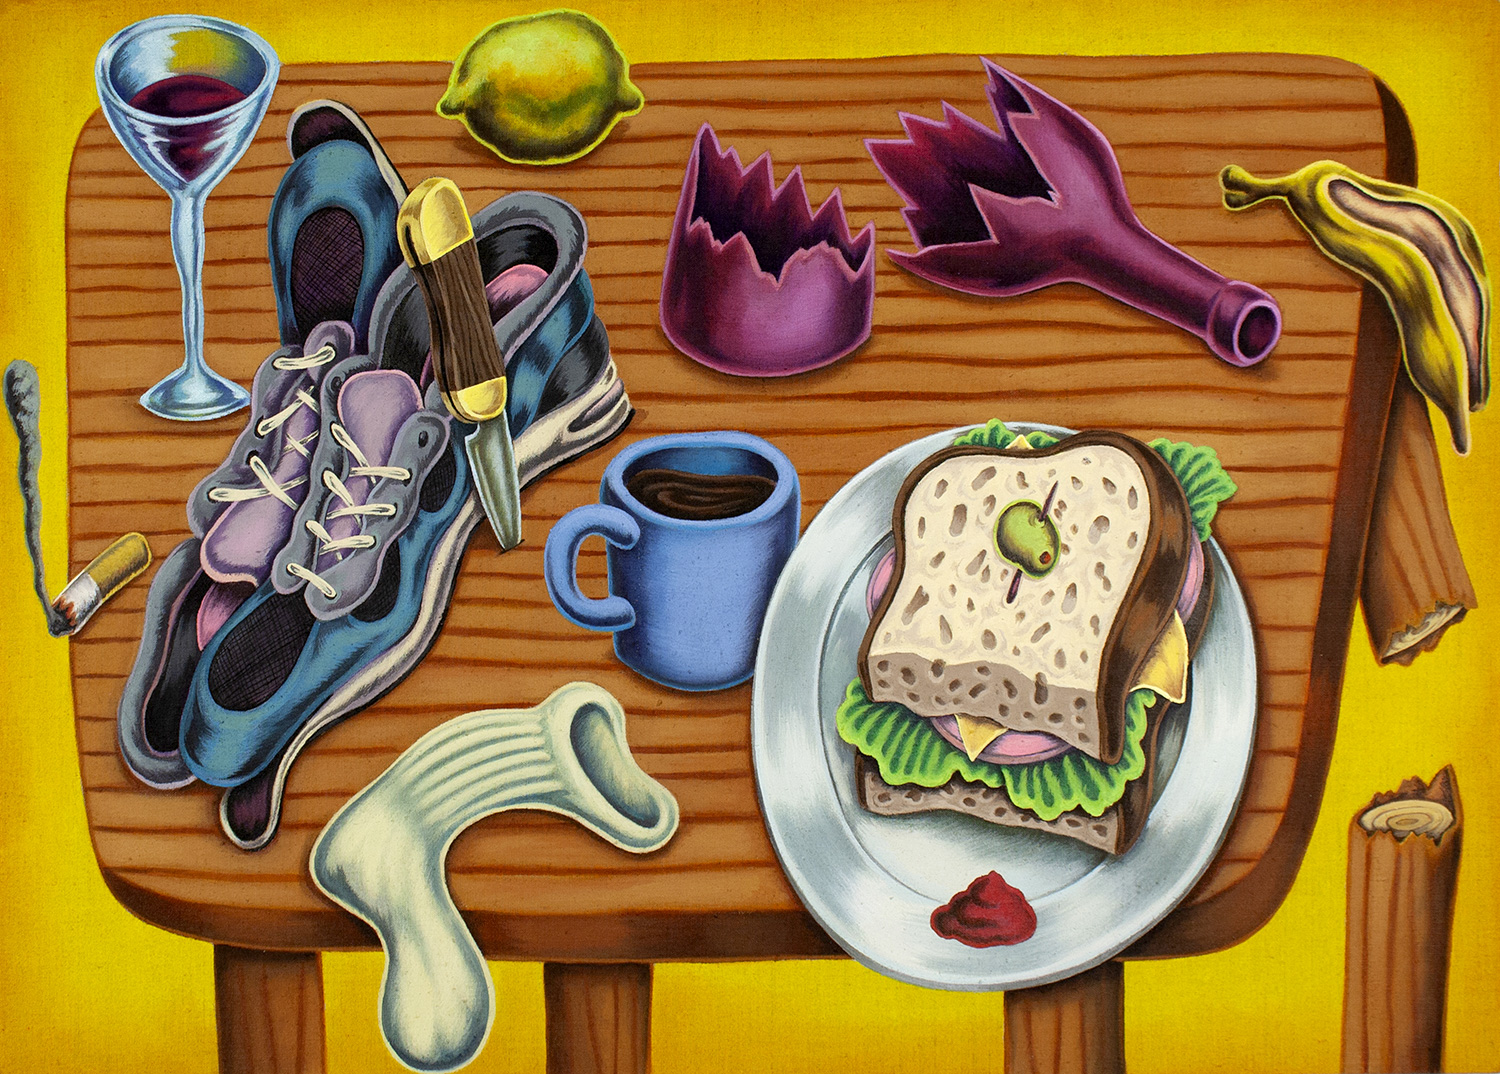 """Sandwich, Sneakers and Other Lost or Discarded Objects""#32""x23"""